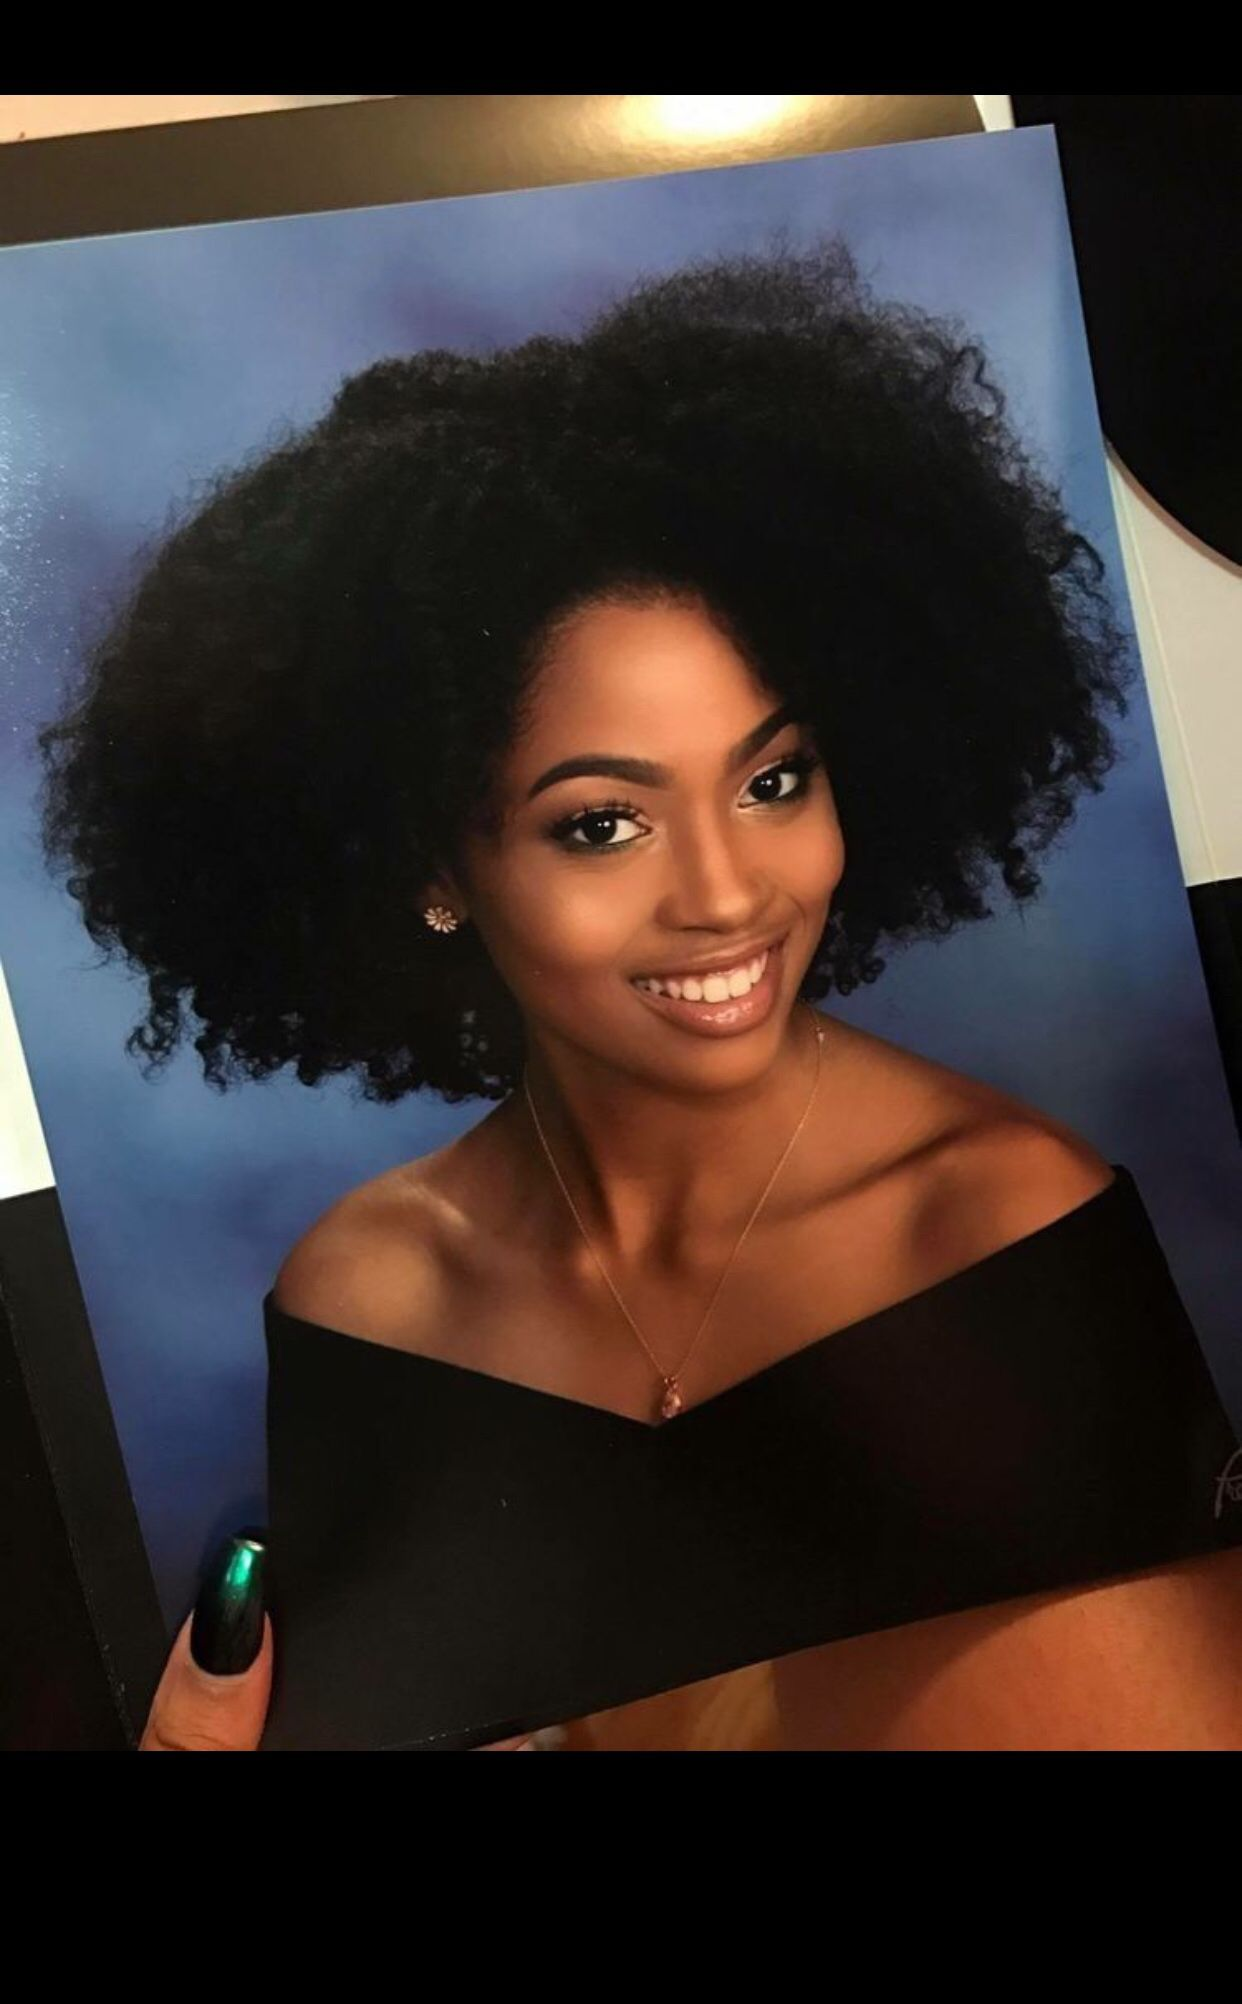 Curly Hairstyles 3b Curly Hairstyles Pics Curly Hairstyles Mens 2019 Curly Hairc In 2020 Senior Pictures Hairstyles Senior Picture Makeup Senior Portraits Yearbook